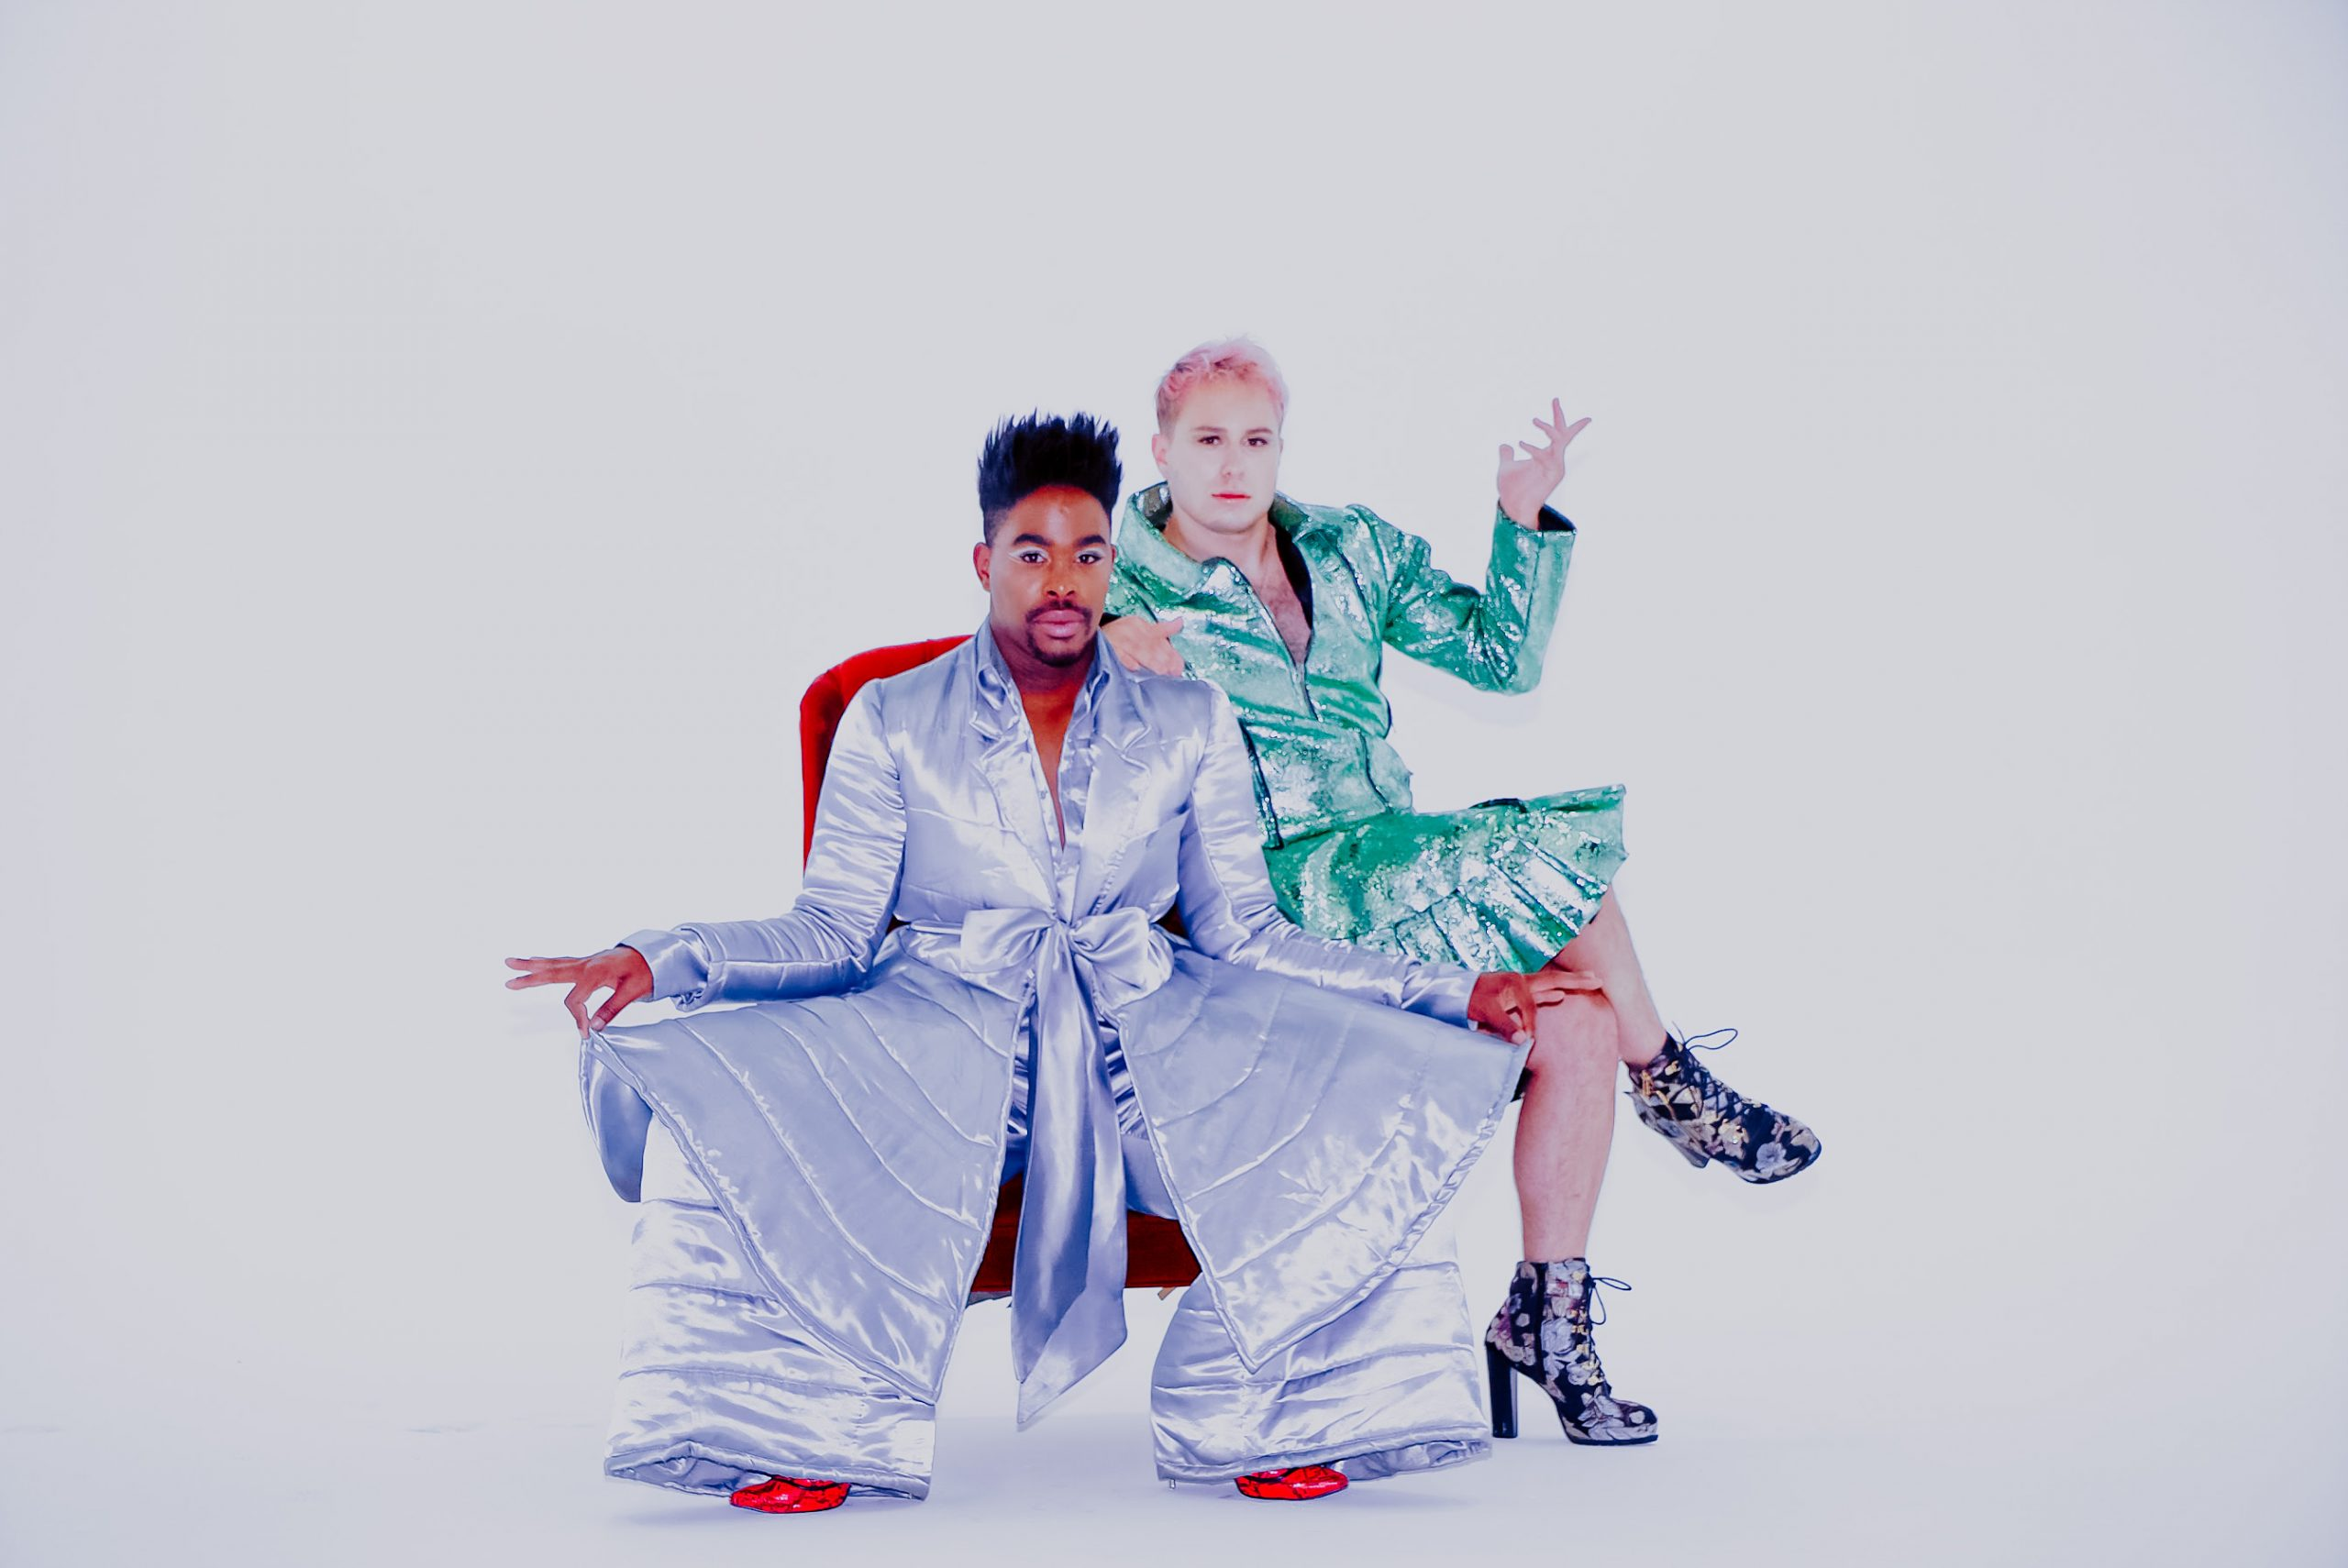 Fab The Duo – It's a 'Party For Two!' Vanity Teen x The Lonely Avocado Fab The Duo – It's a 'Party For Two!' Vanity Teen x The Lonely Avocado Vanity Teen Menswear & new faces magazine